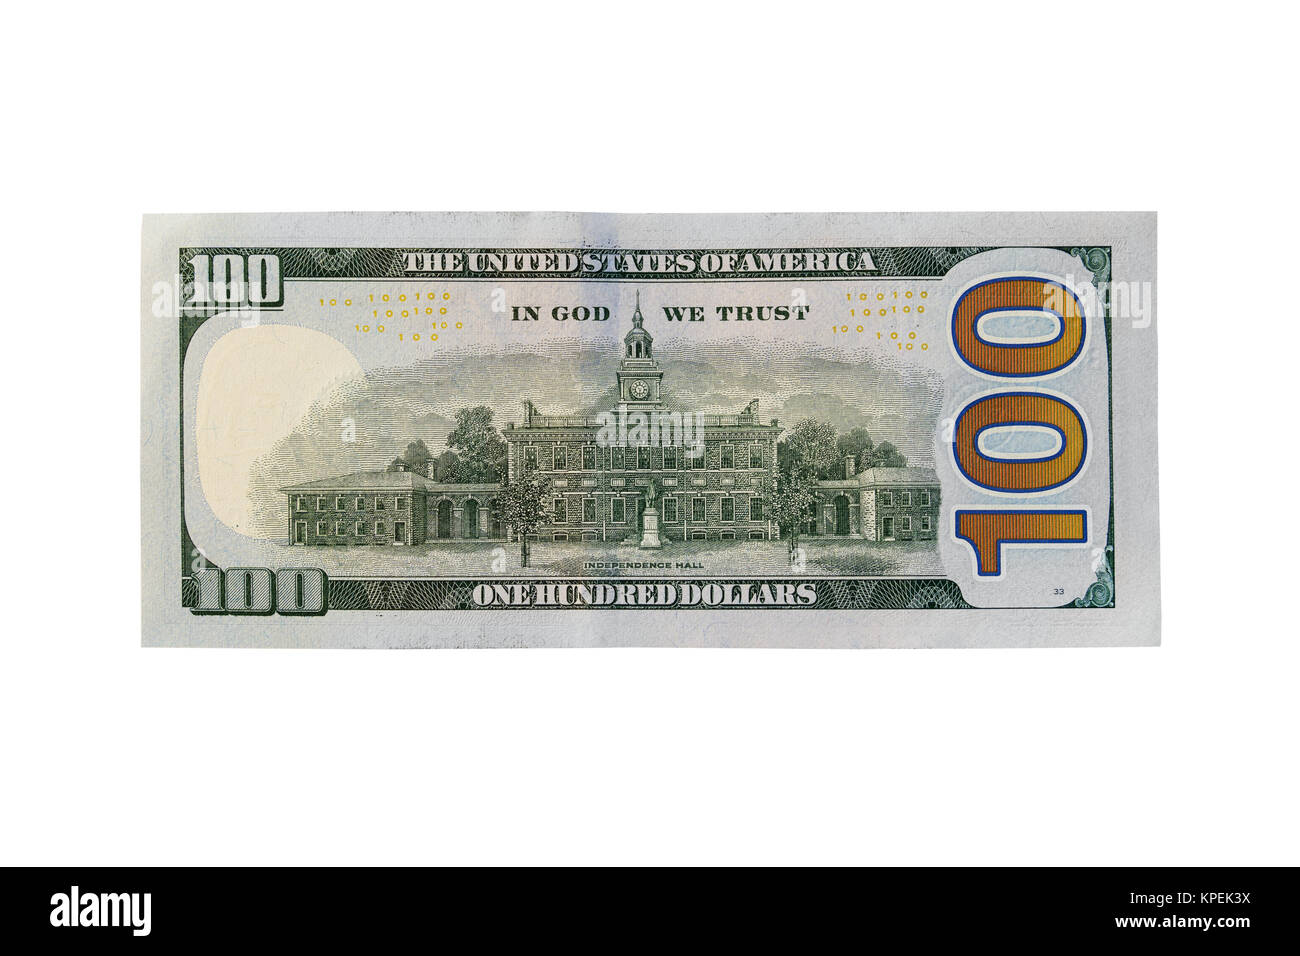 Back of new one hundred dollar bill isolated on a white background - Stock Image